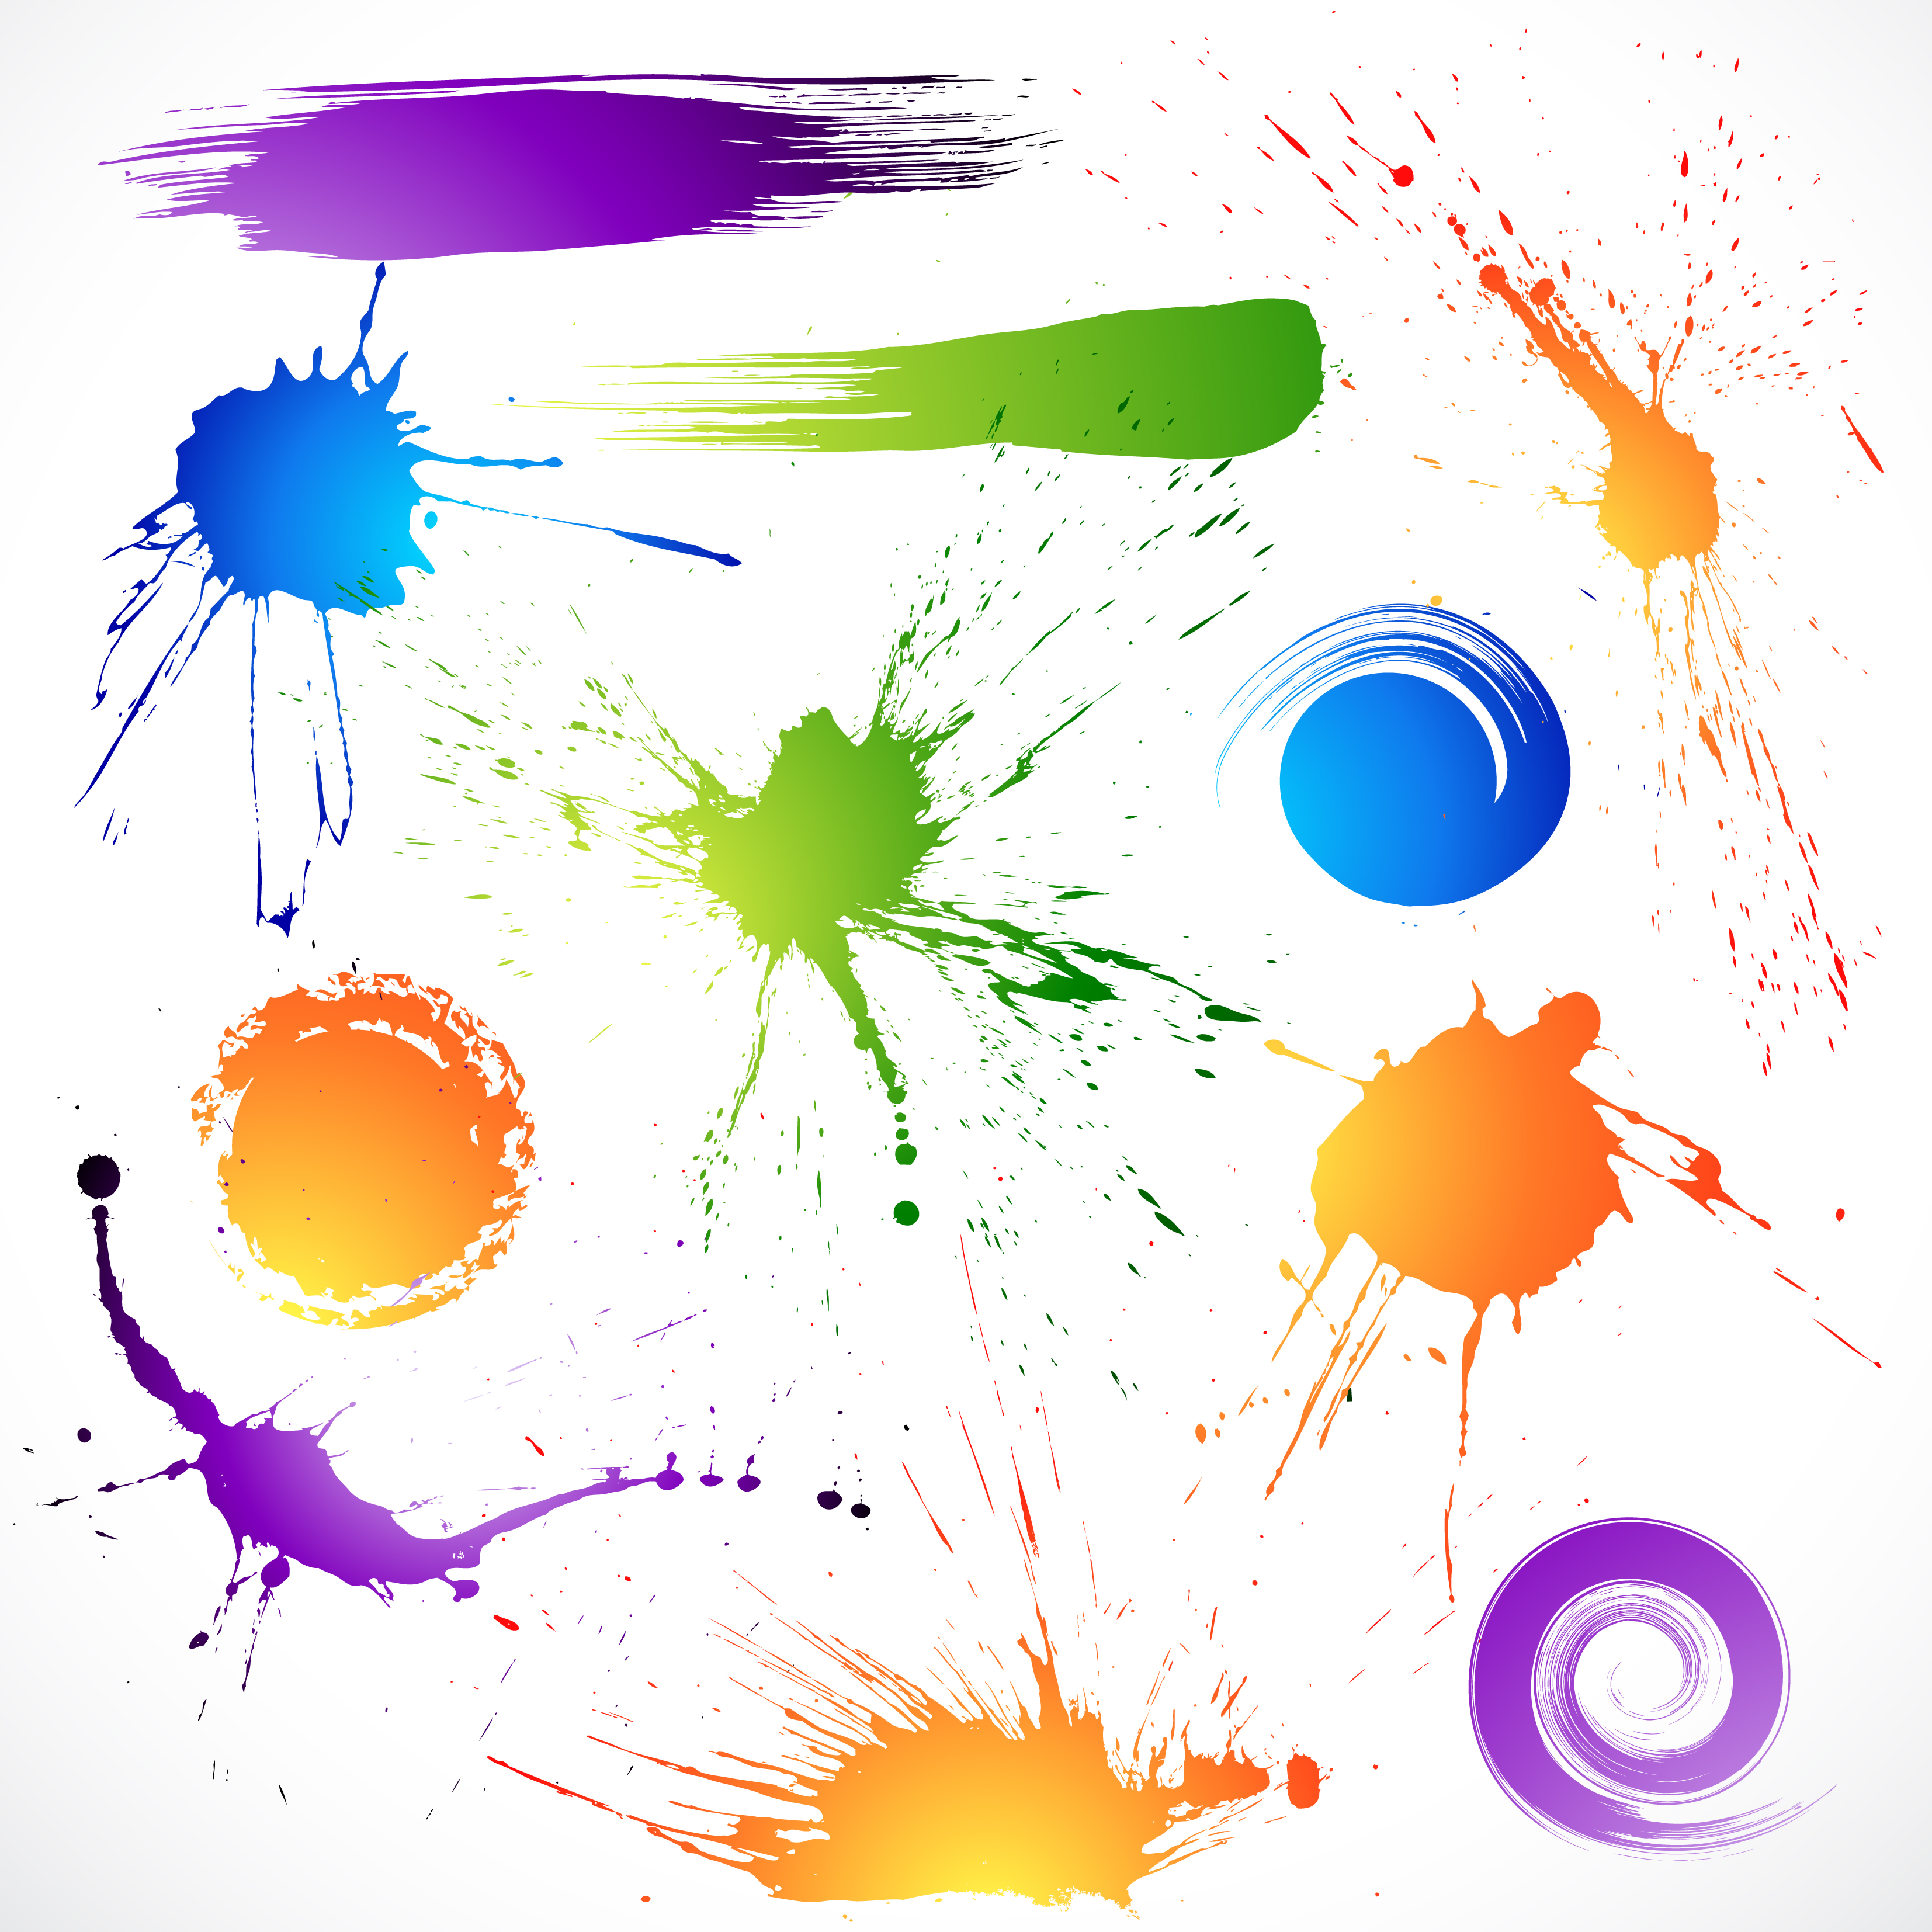 12 Free Vector Effects Images - Light Effects, Paint Splash Vector